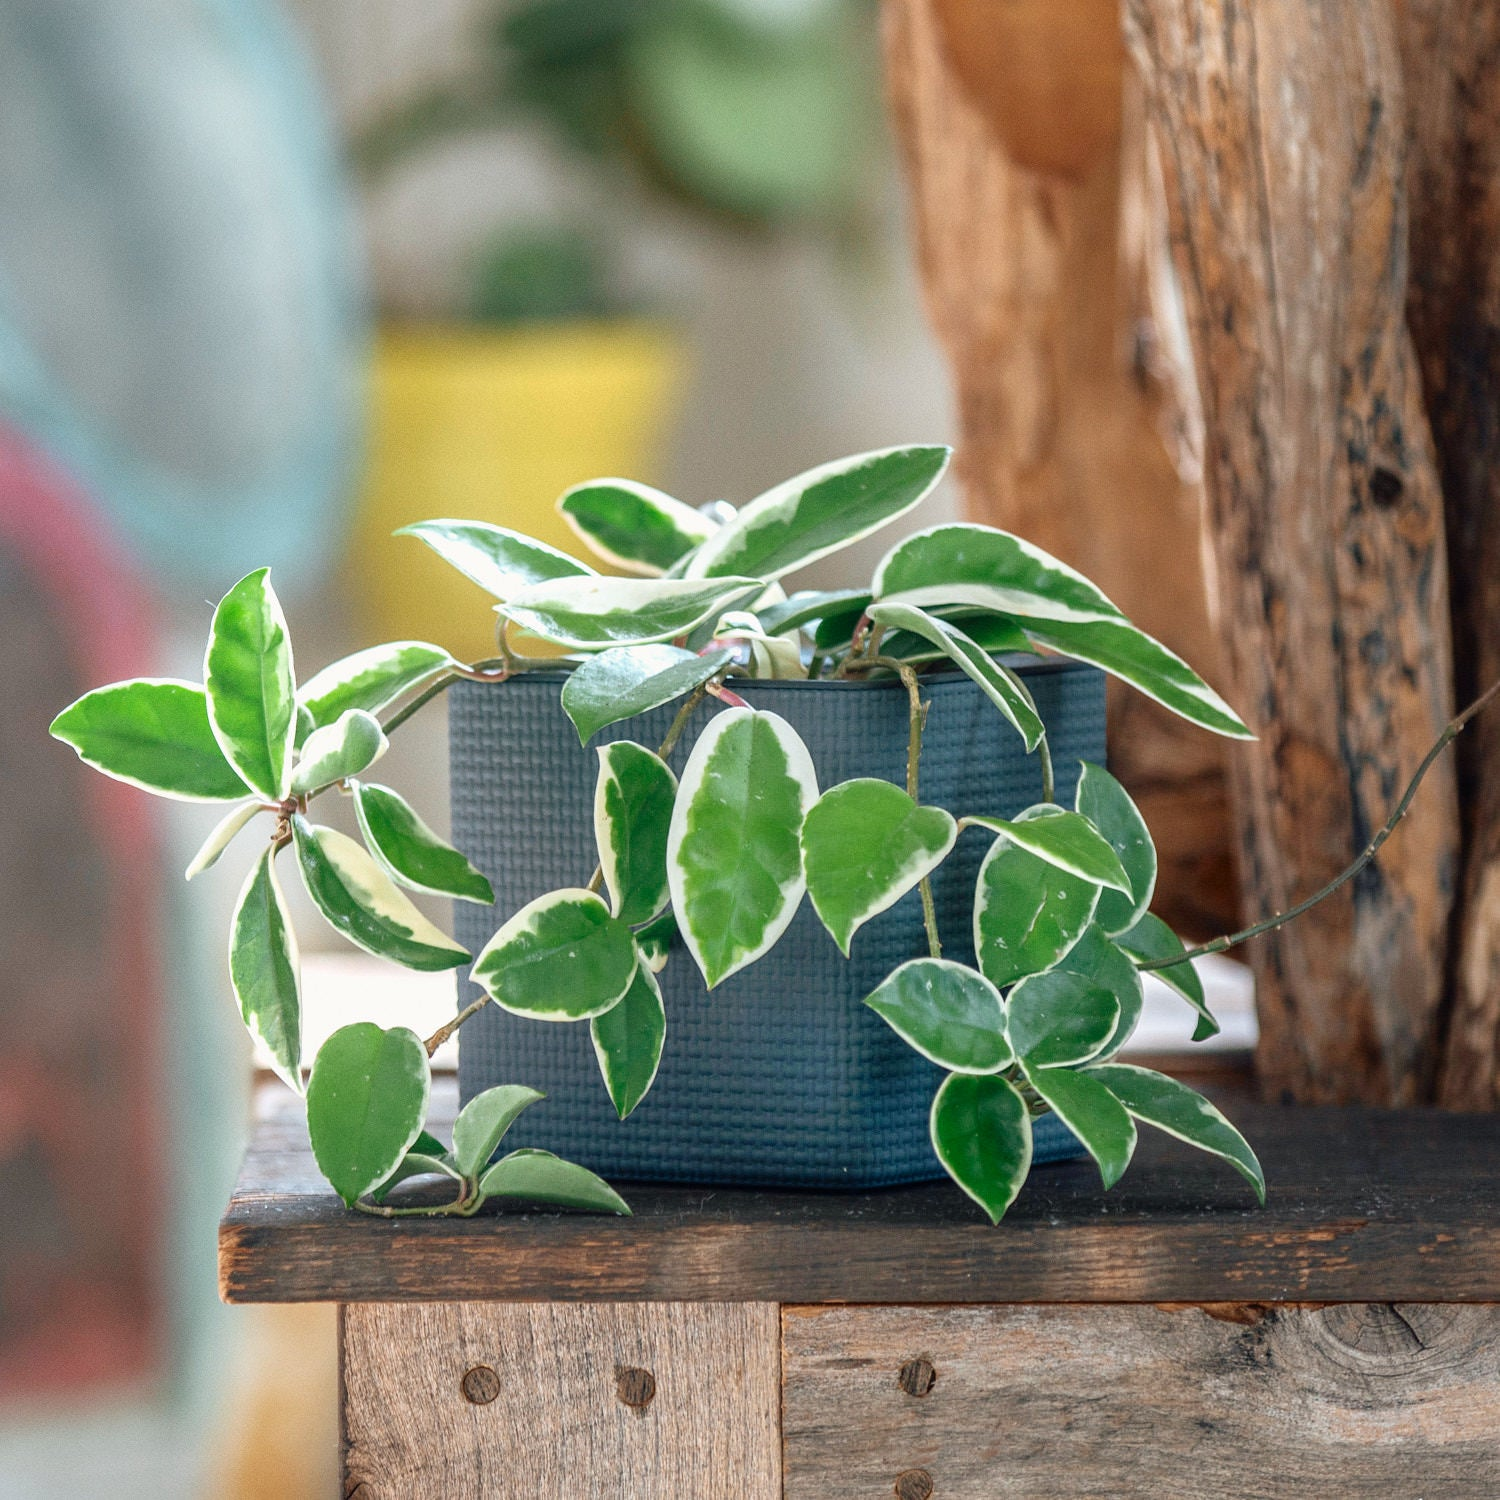 Hoya Carnosa Tricolor In Lechuza Cube 14 Slate Planter | My City Plants